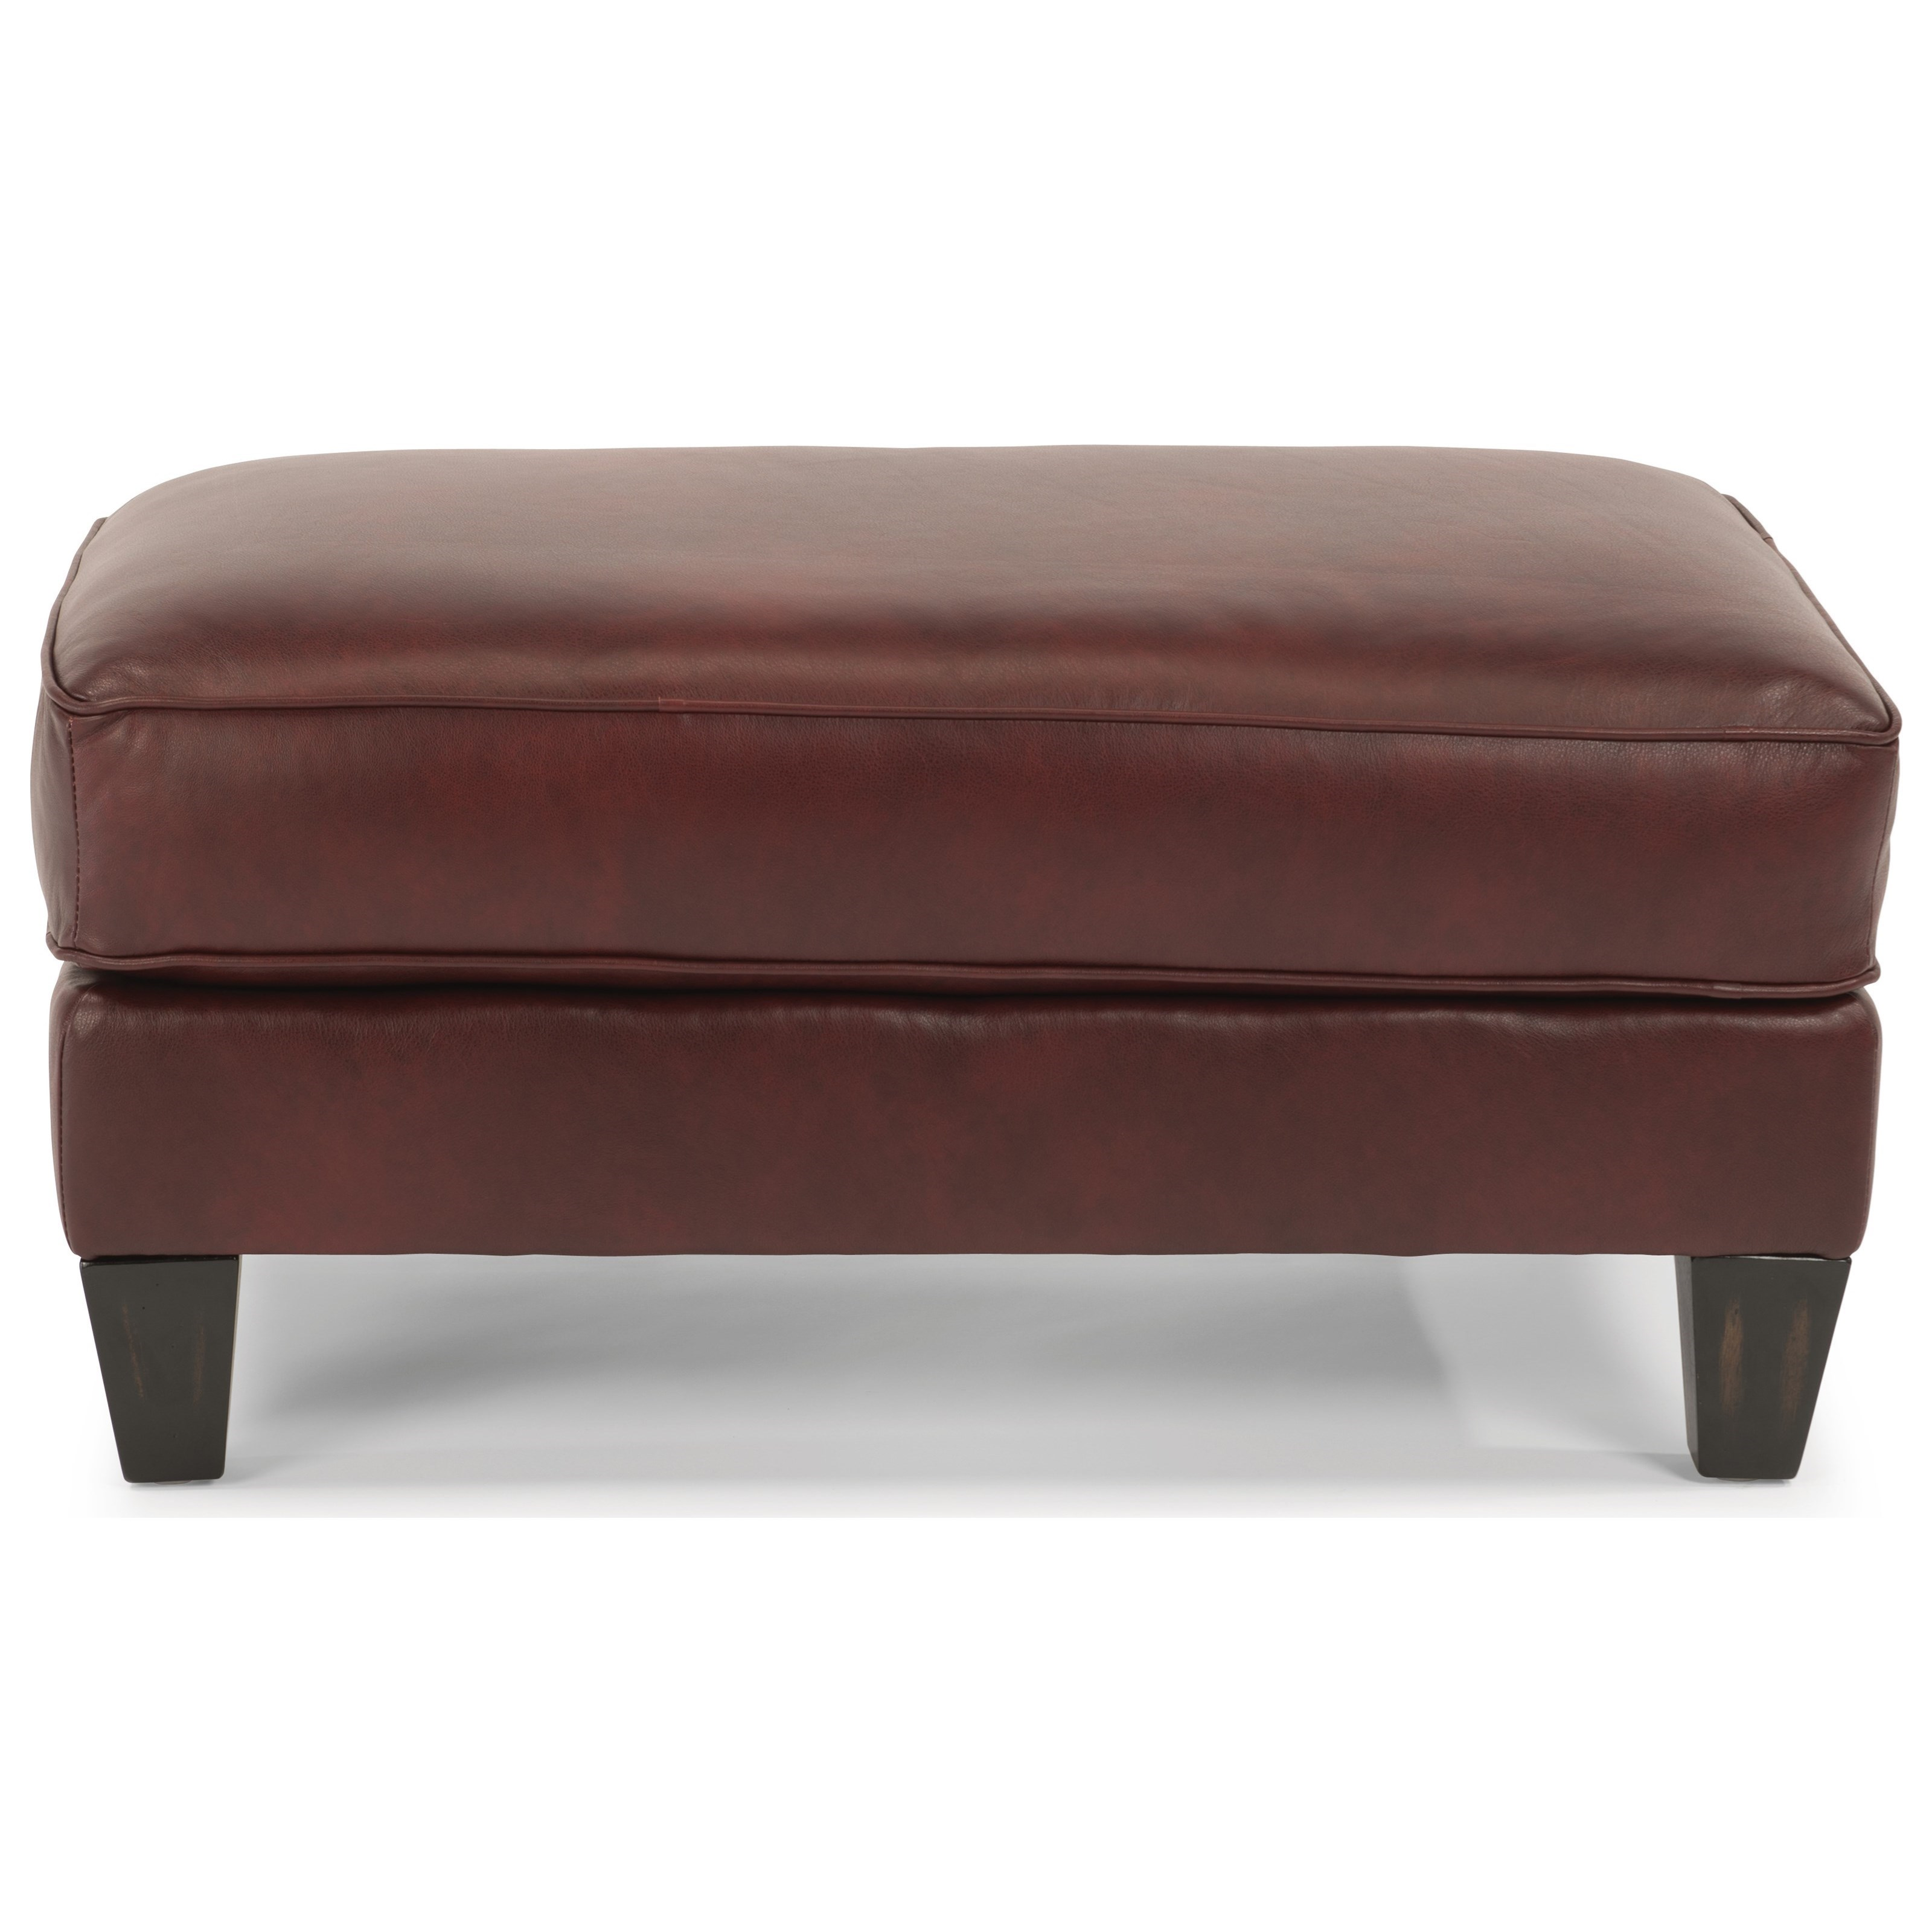 Caldwell Leather Cocktail Ottoman by Flexsteel at Crowley Furniture & Mattress